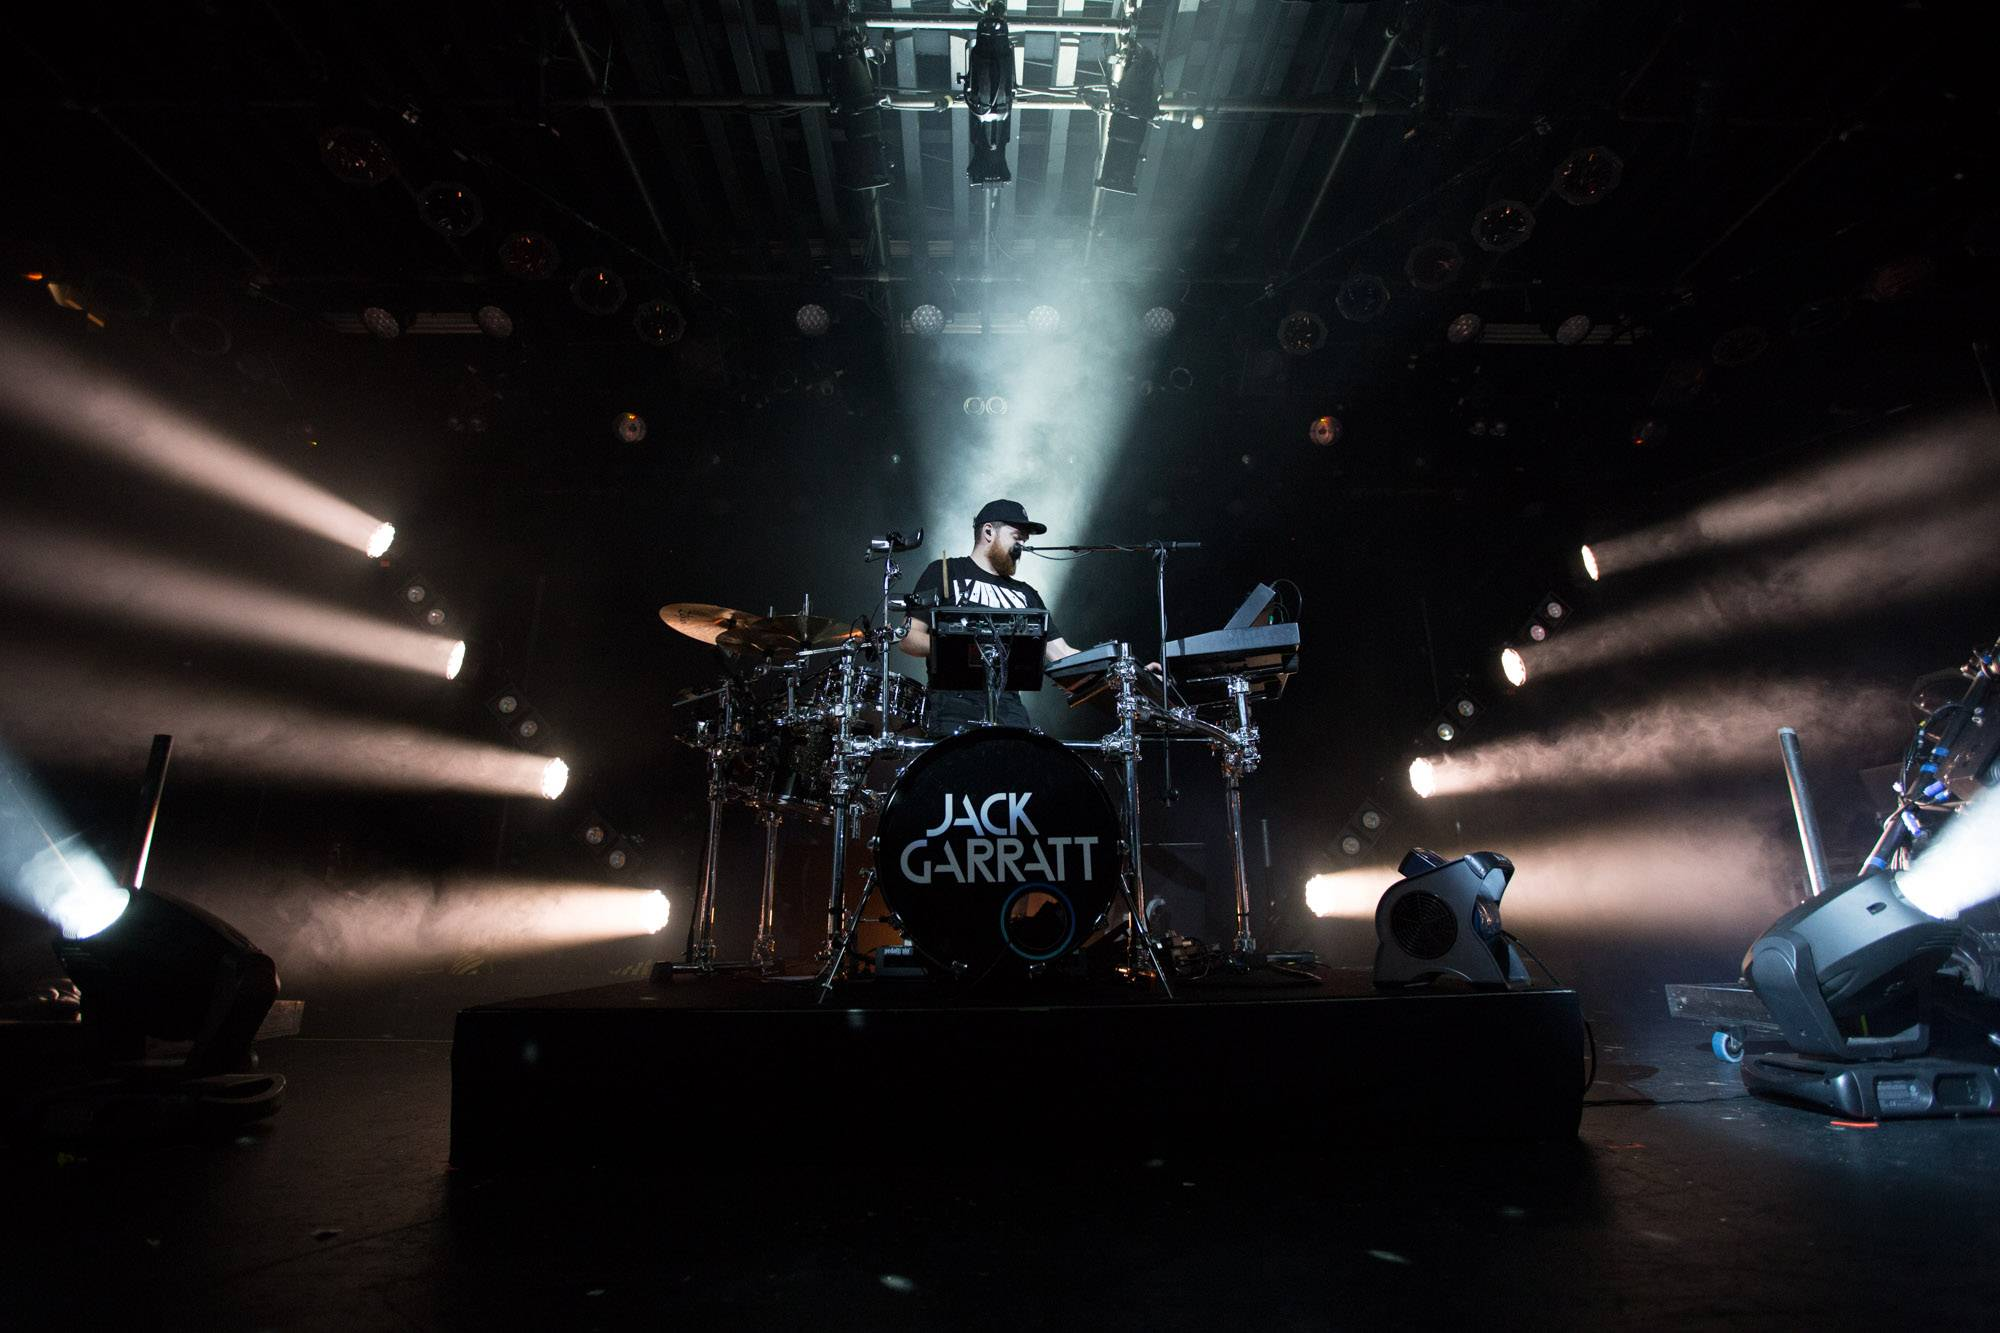 Jack Garratt at the Commodore Ballroom, Vancouver, Sept. 26 2016. Kirk Chantraine photo.